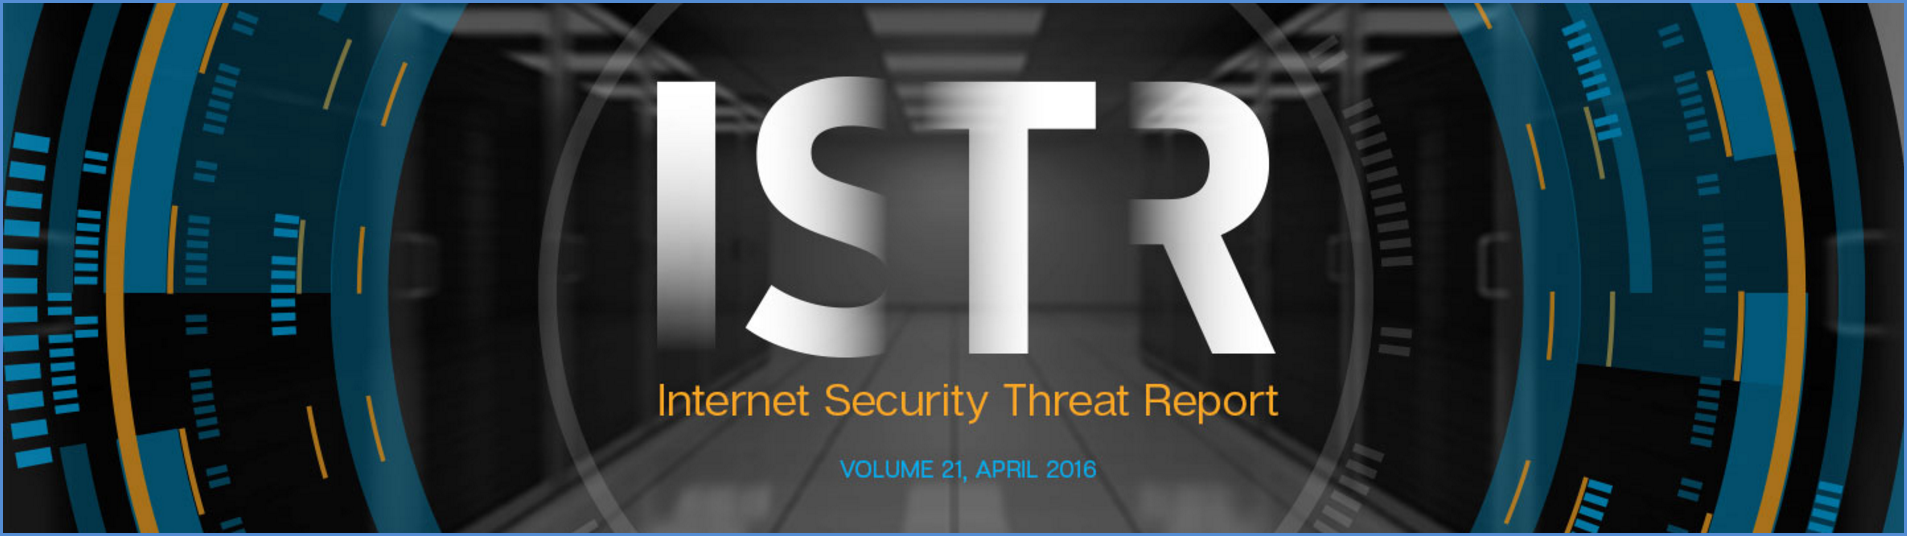 internet-security-threat-report-2016.png